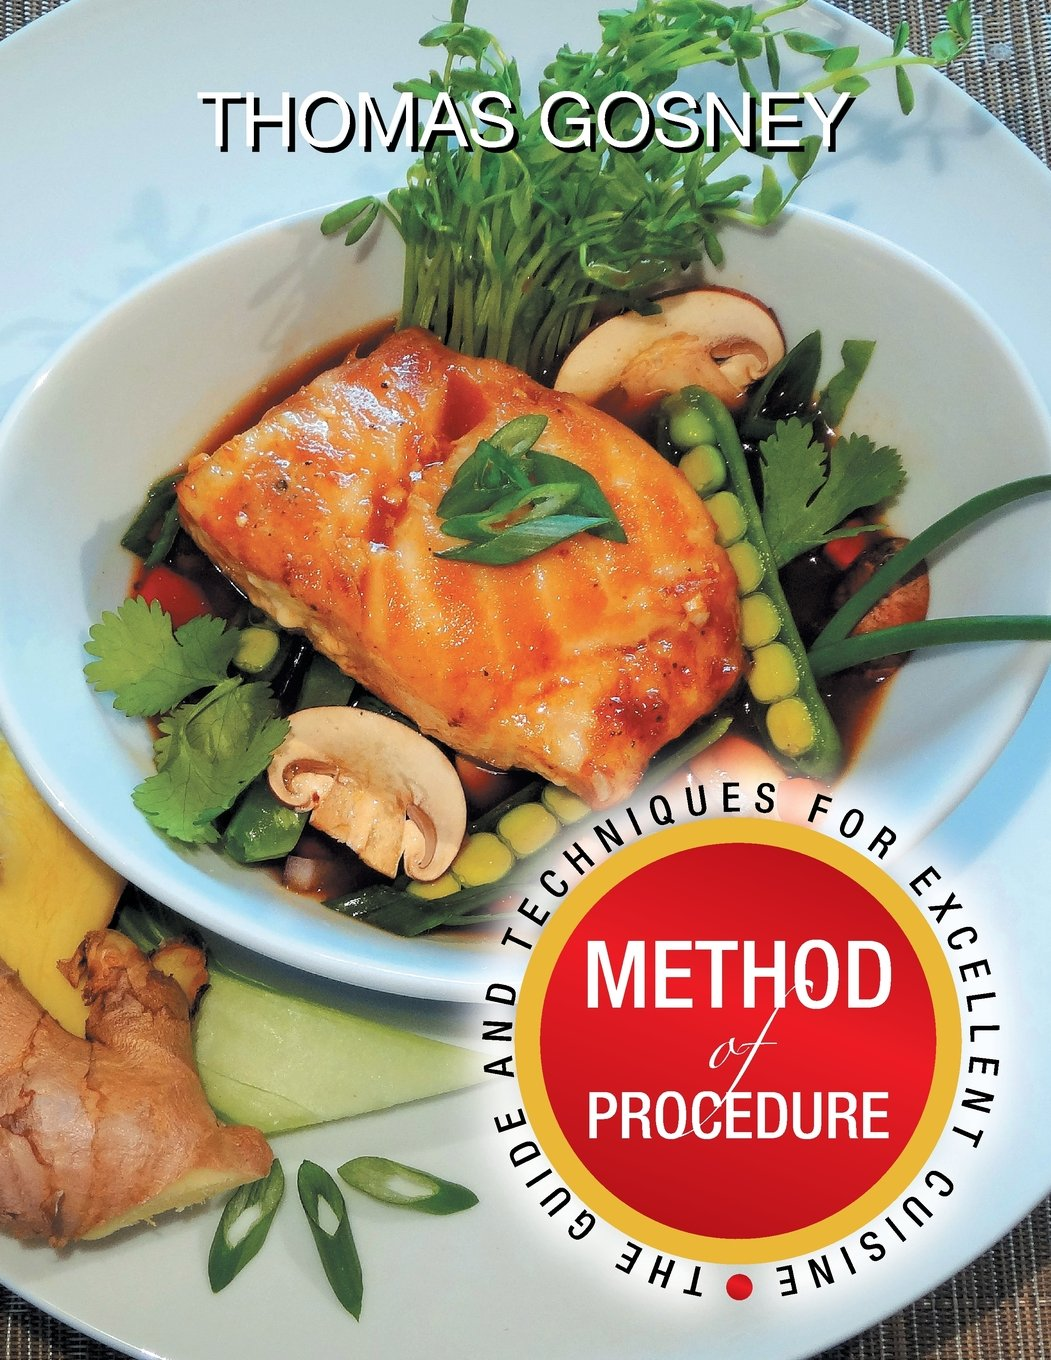 Method of Procedure: The Guide and Techniques for Excellent Cuisine free download